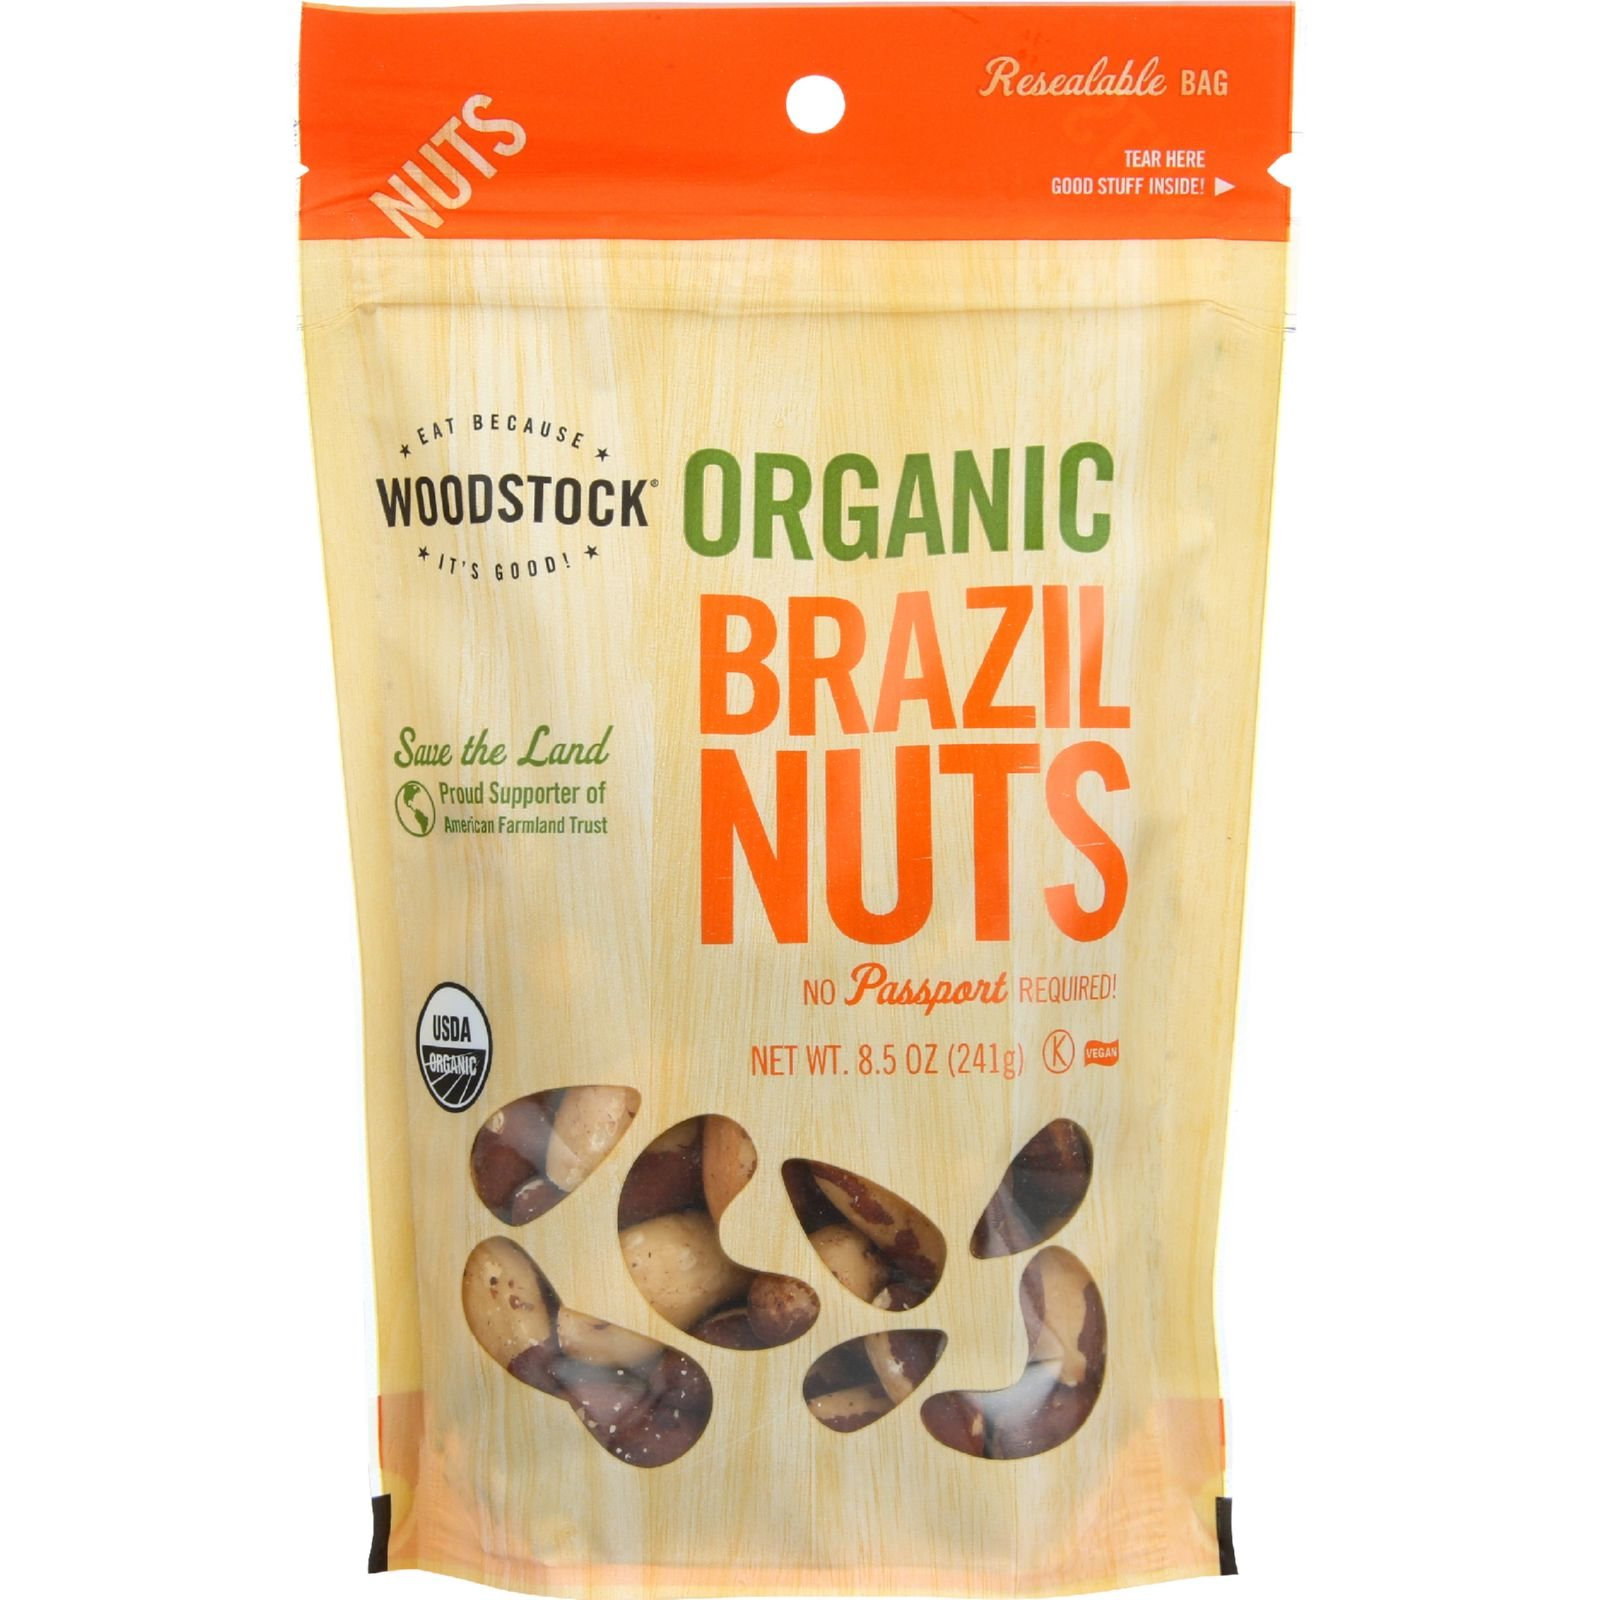 Woodstock Nuts - Organic Brazil Nuts - 8.5 oz - case of 8 - Vegan - Nutrient rich - No Sodium